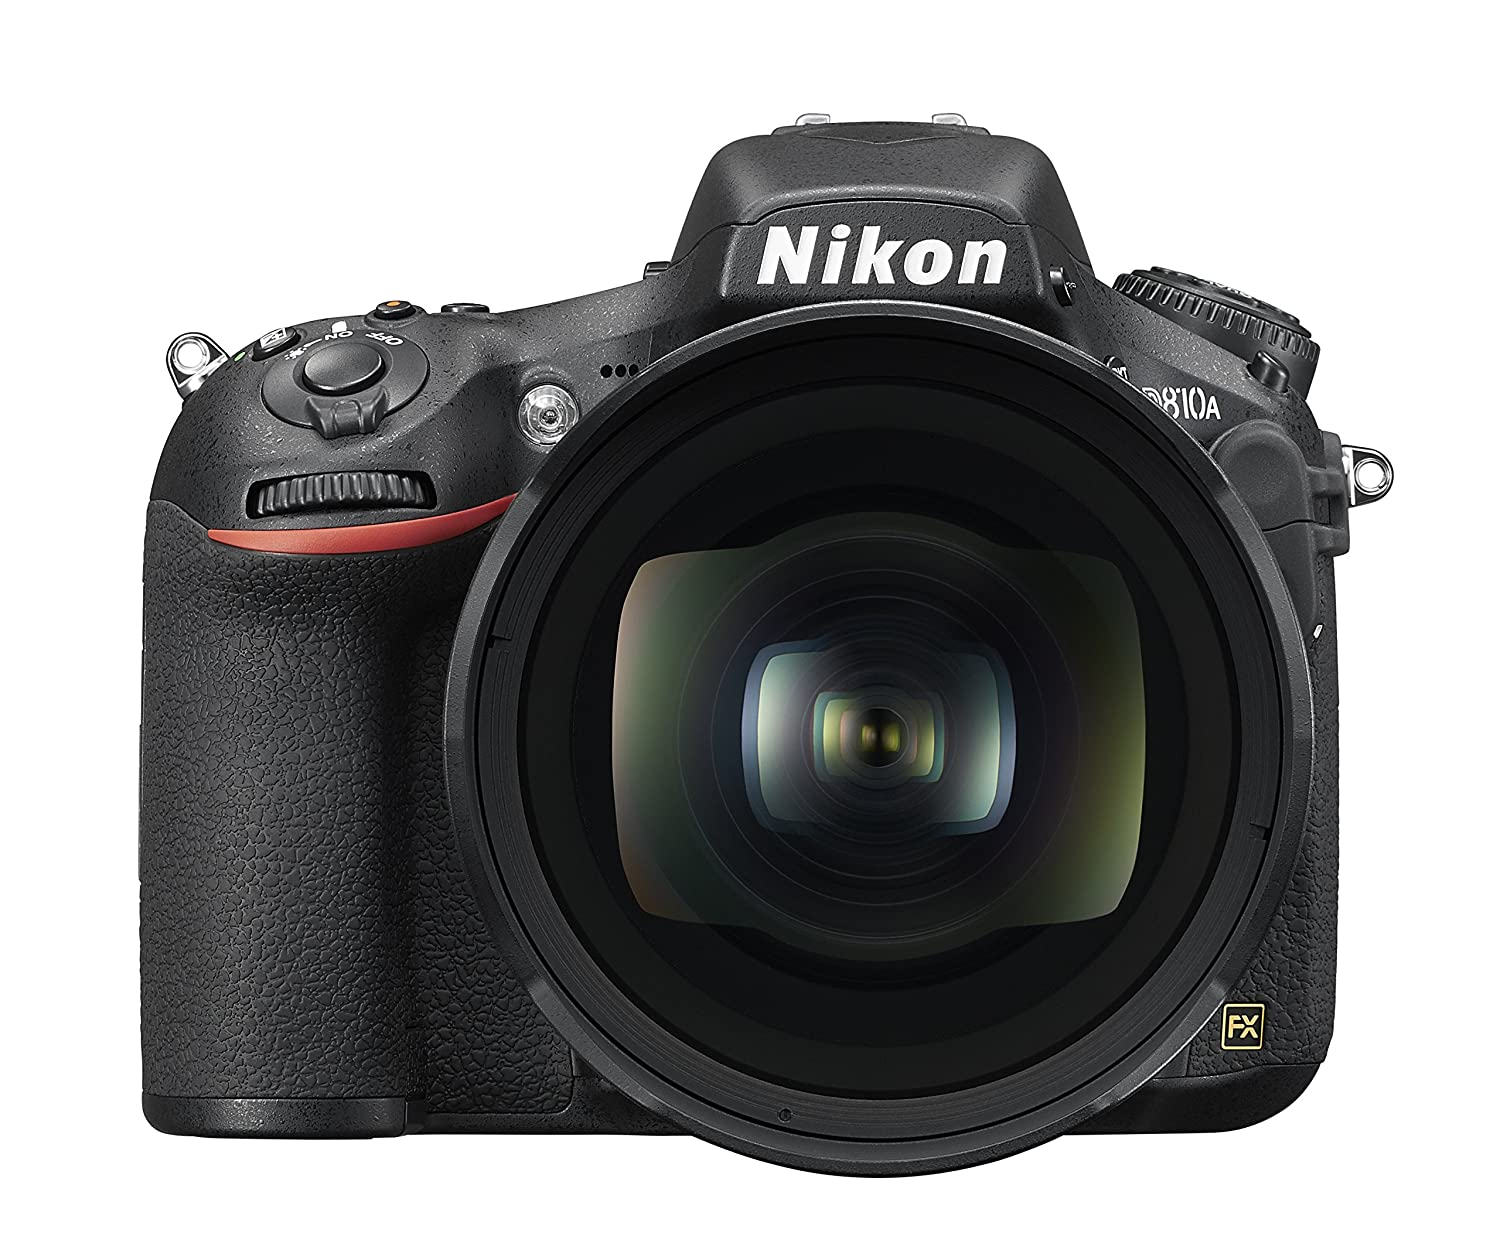 NIKON D810A CAMERA WINDOWS 8 DRIVERS DOWNLOAD